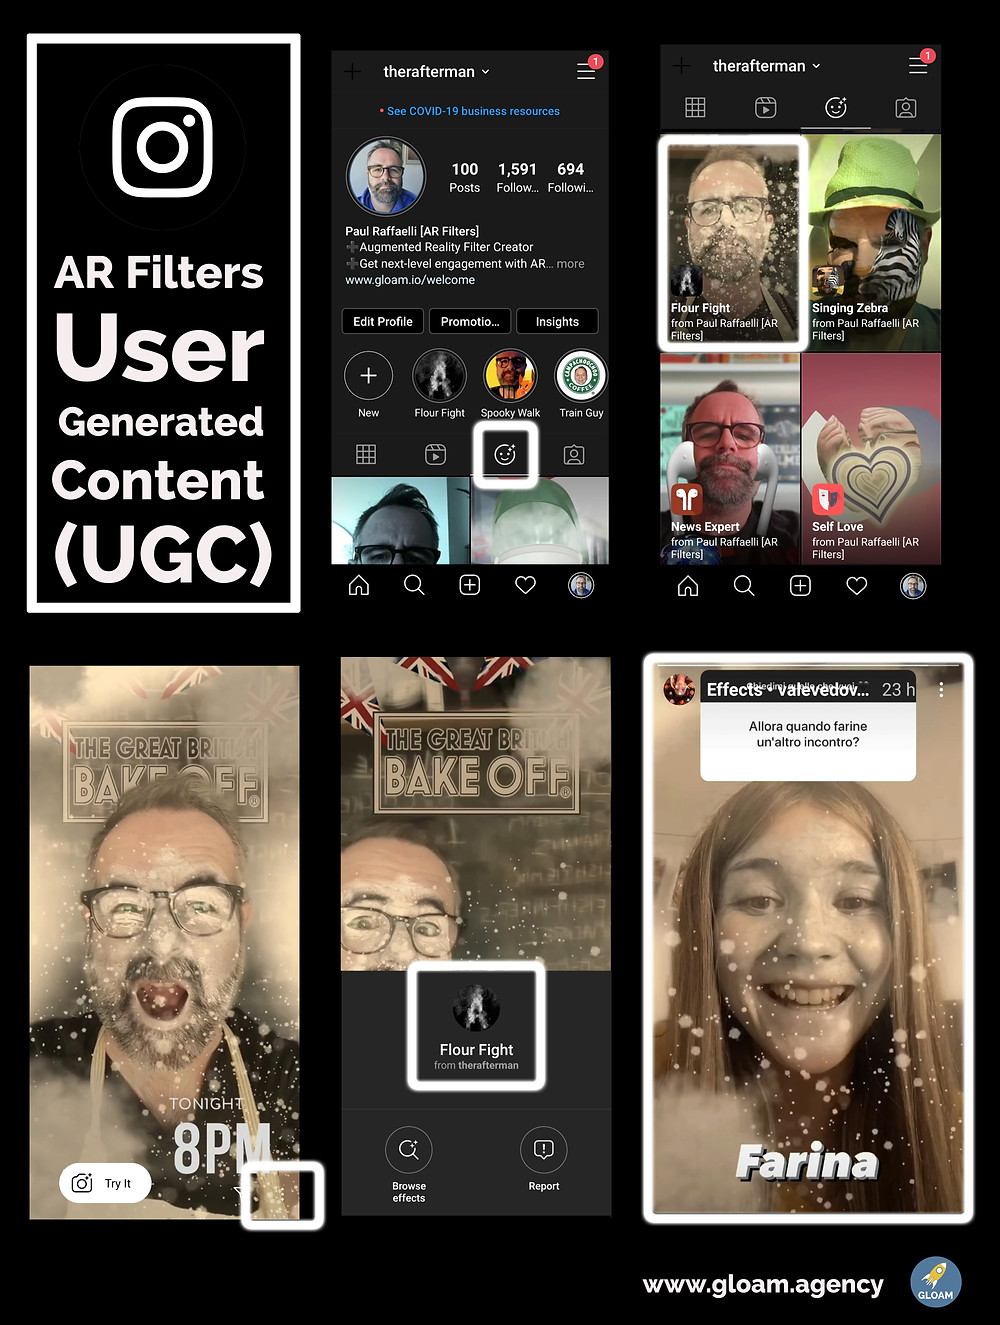 Who's used your Instagram AR Filter UGC content and videos are on your profile